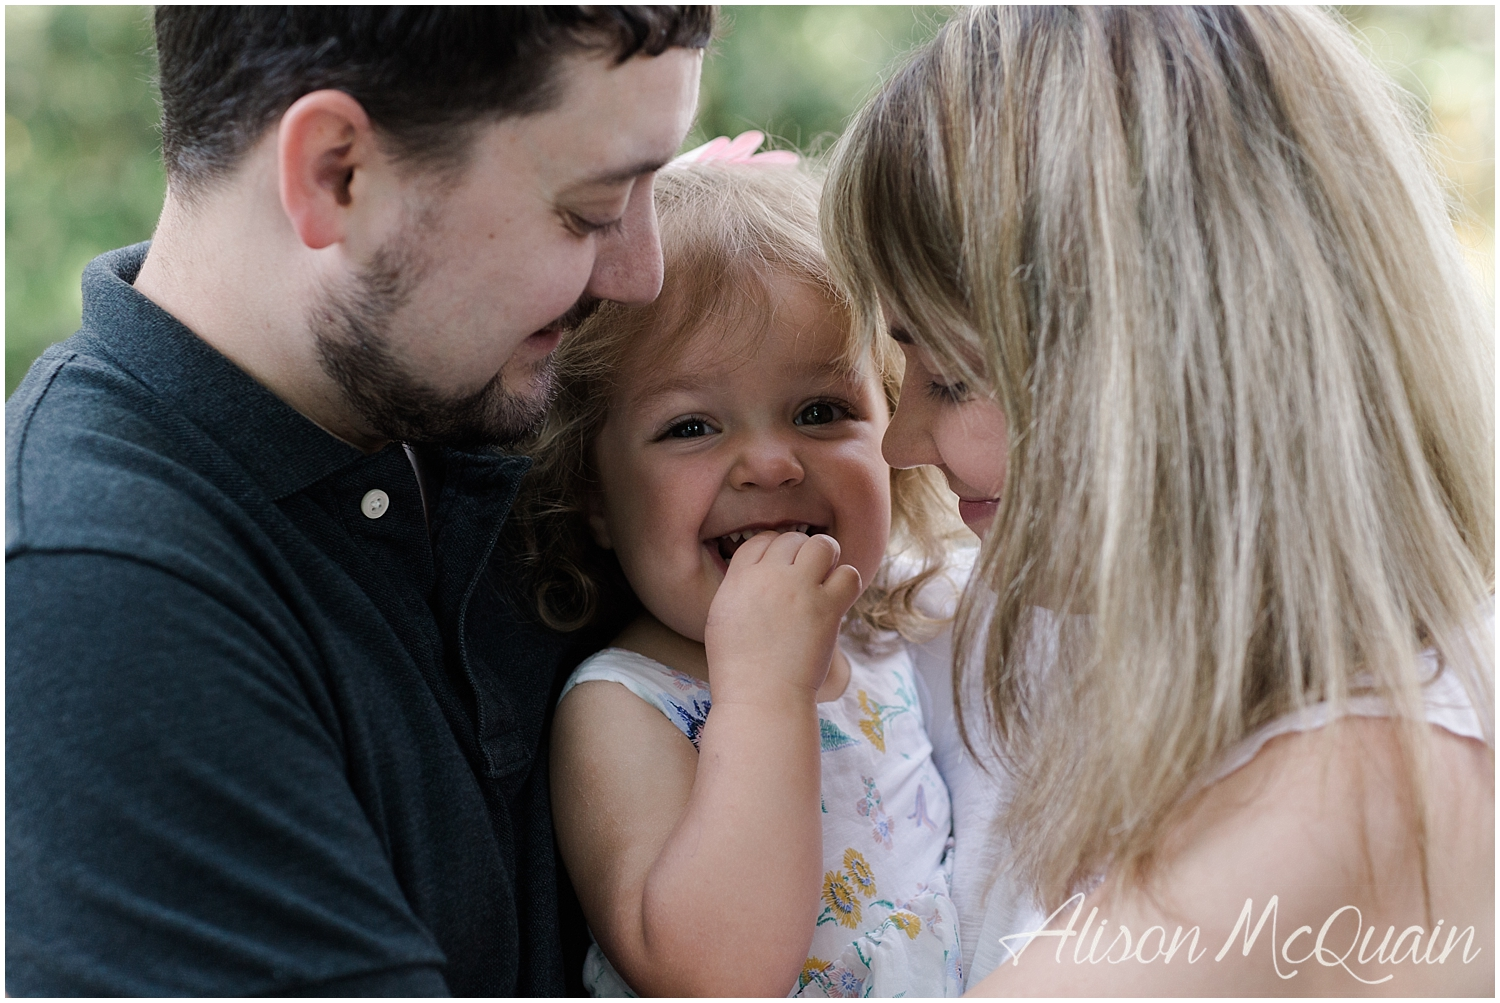 O'Keefe_Knoxville_Family_KnoxvilleBotanicalGardens_amp2018-07-03_0043.jpg